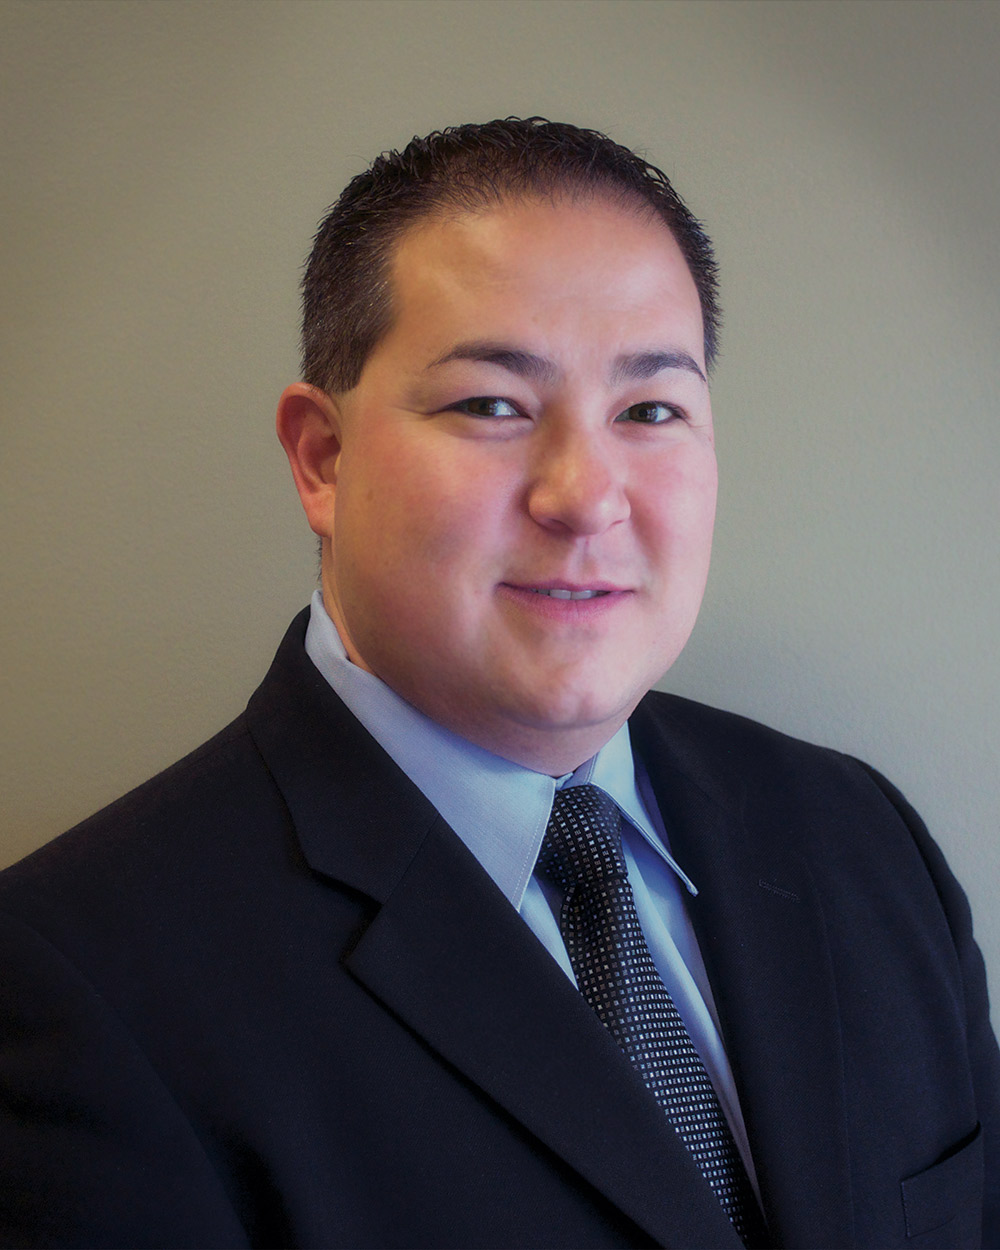 Headshot of President and CEO Michael Marino